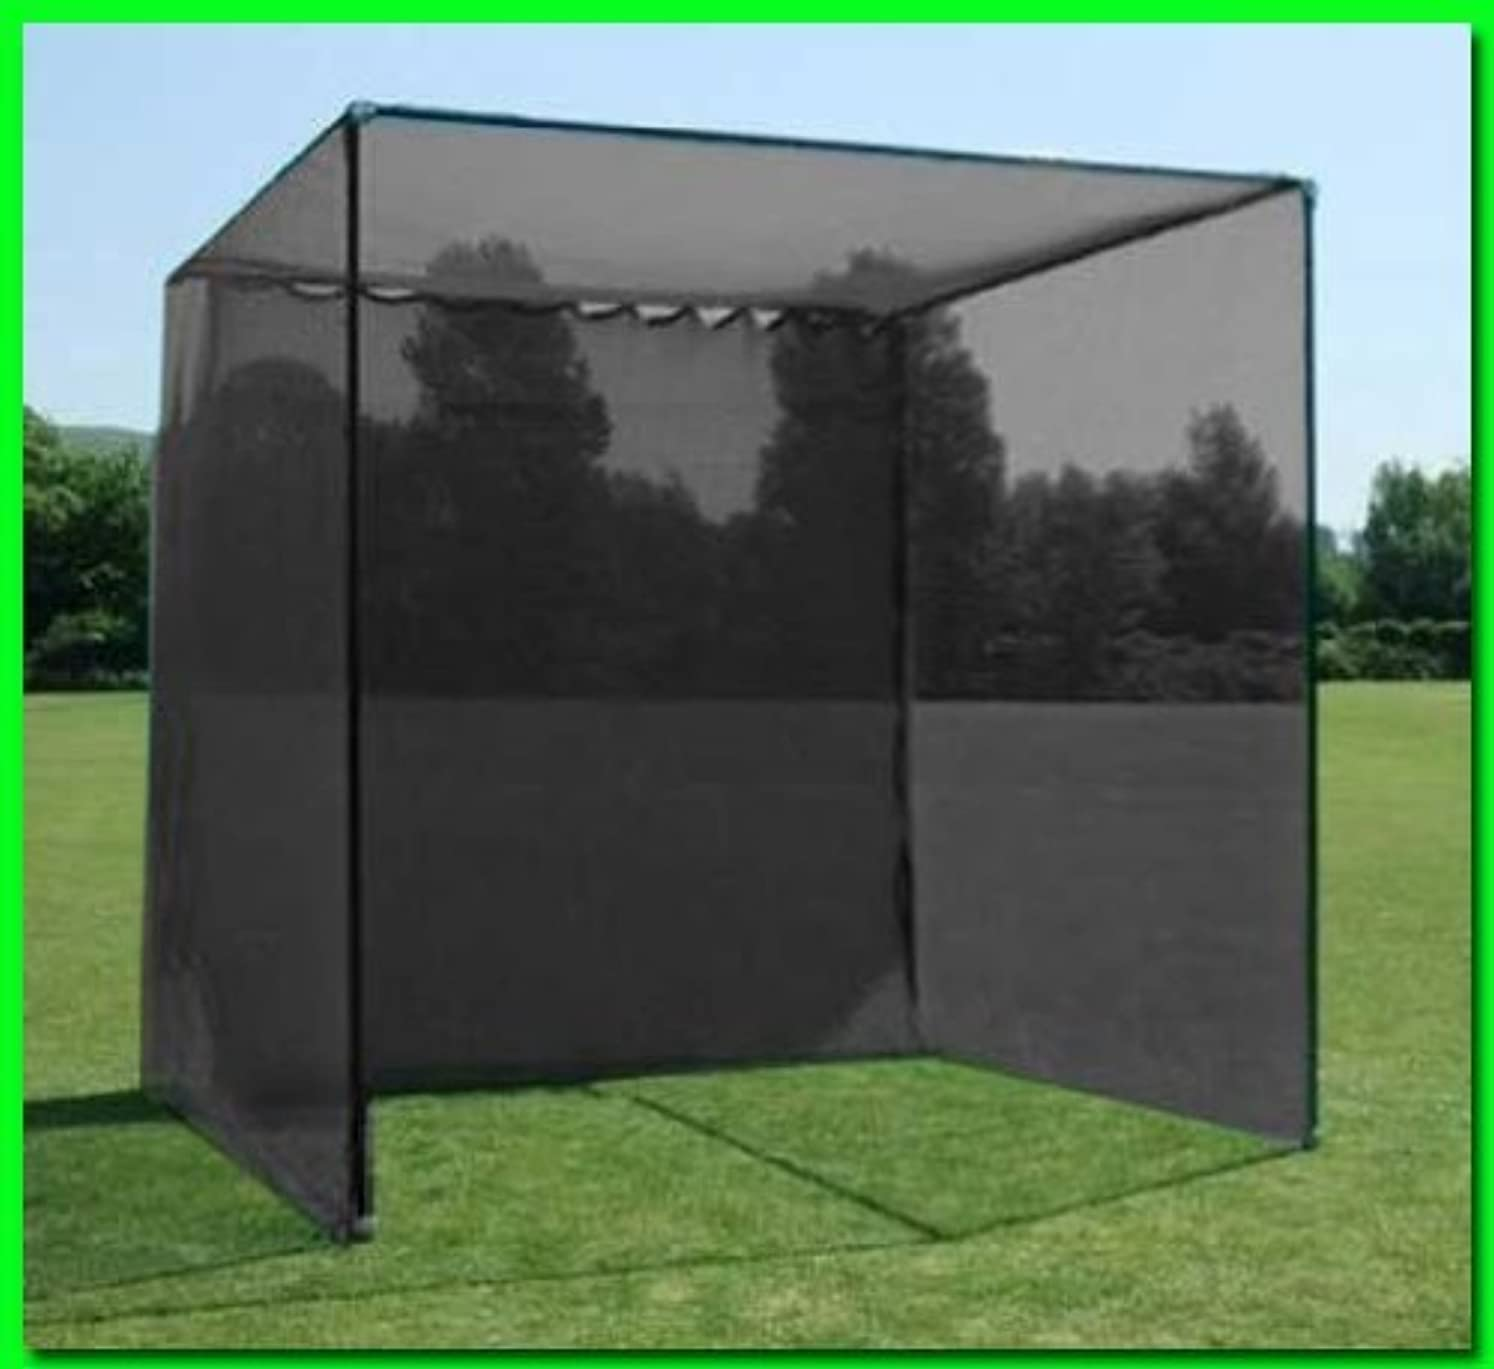 Dura-Pro 10'(d) x 10'(h) x10'(w) Golf Cage Golf Net with High Velocity Strong Impact Netting, High Impact Double Back Stop and Target. Commercial Quality Materials! glrisojyk1267190